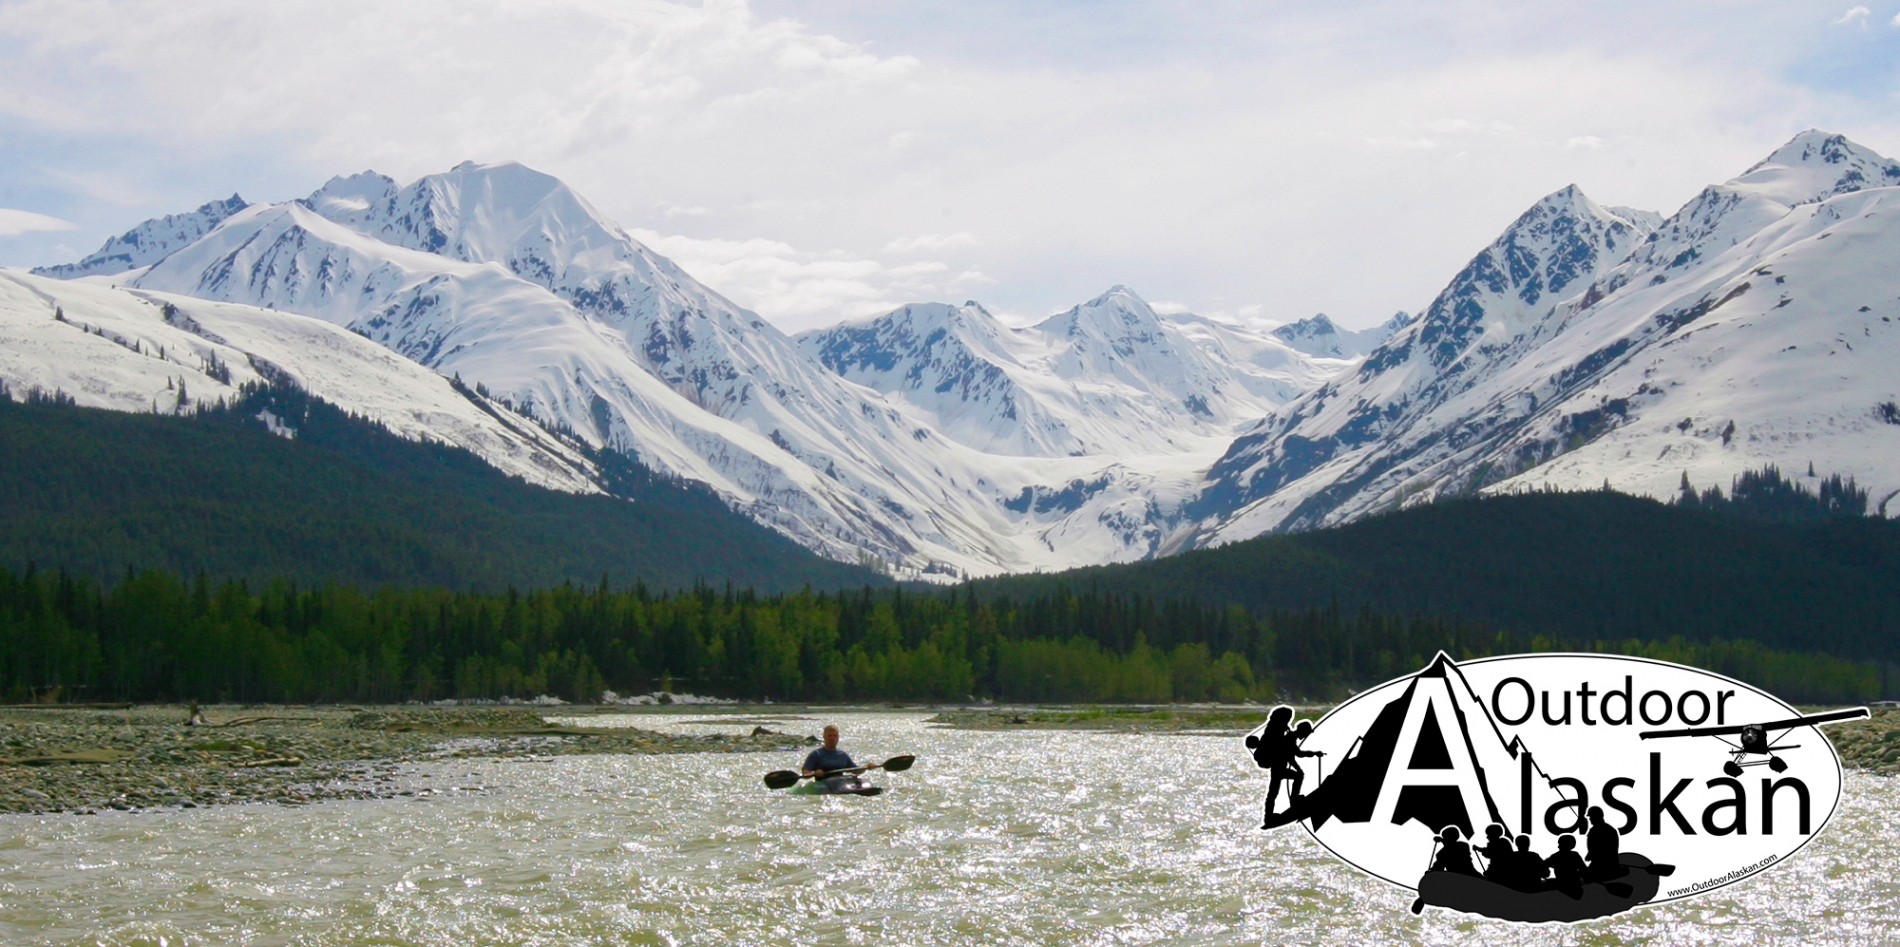 Kayaking the Klehini River with Flower Mountain on the left and Saksaia Glacier in the center.